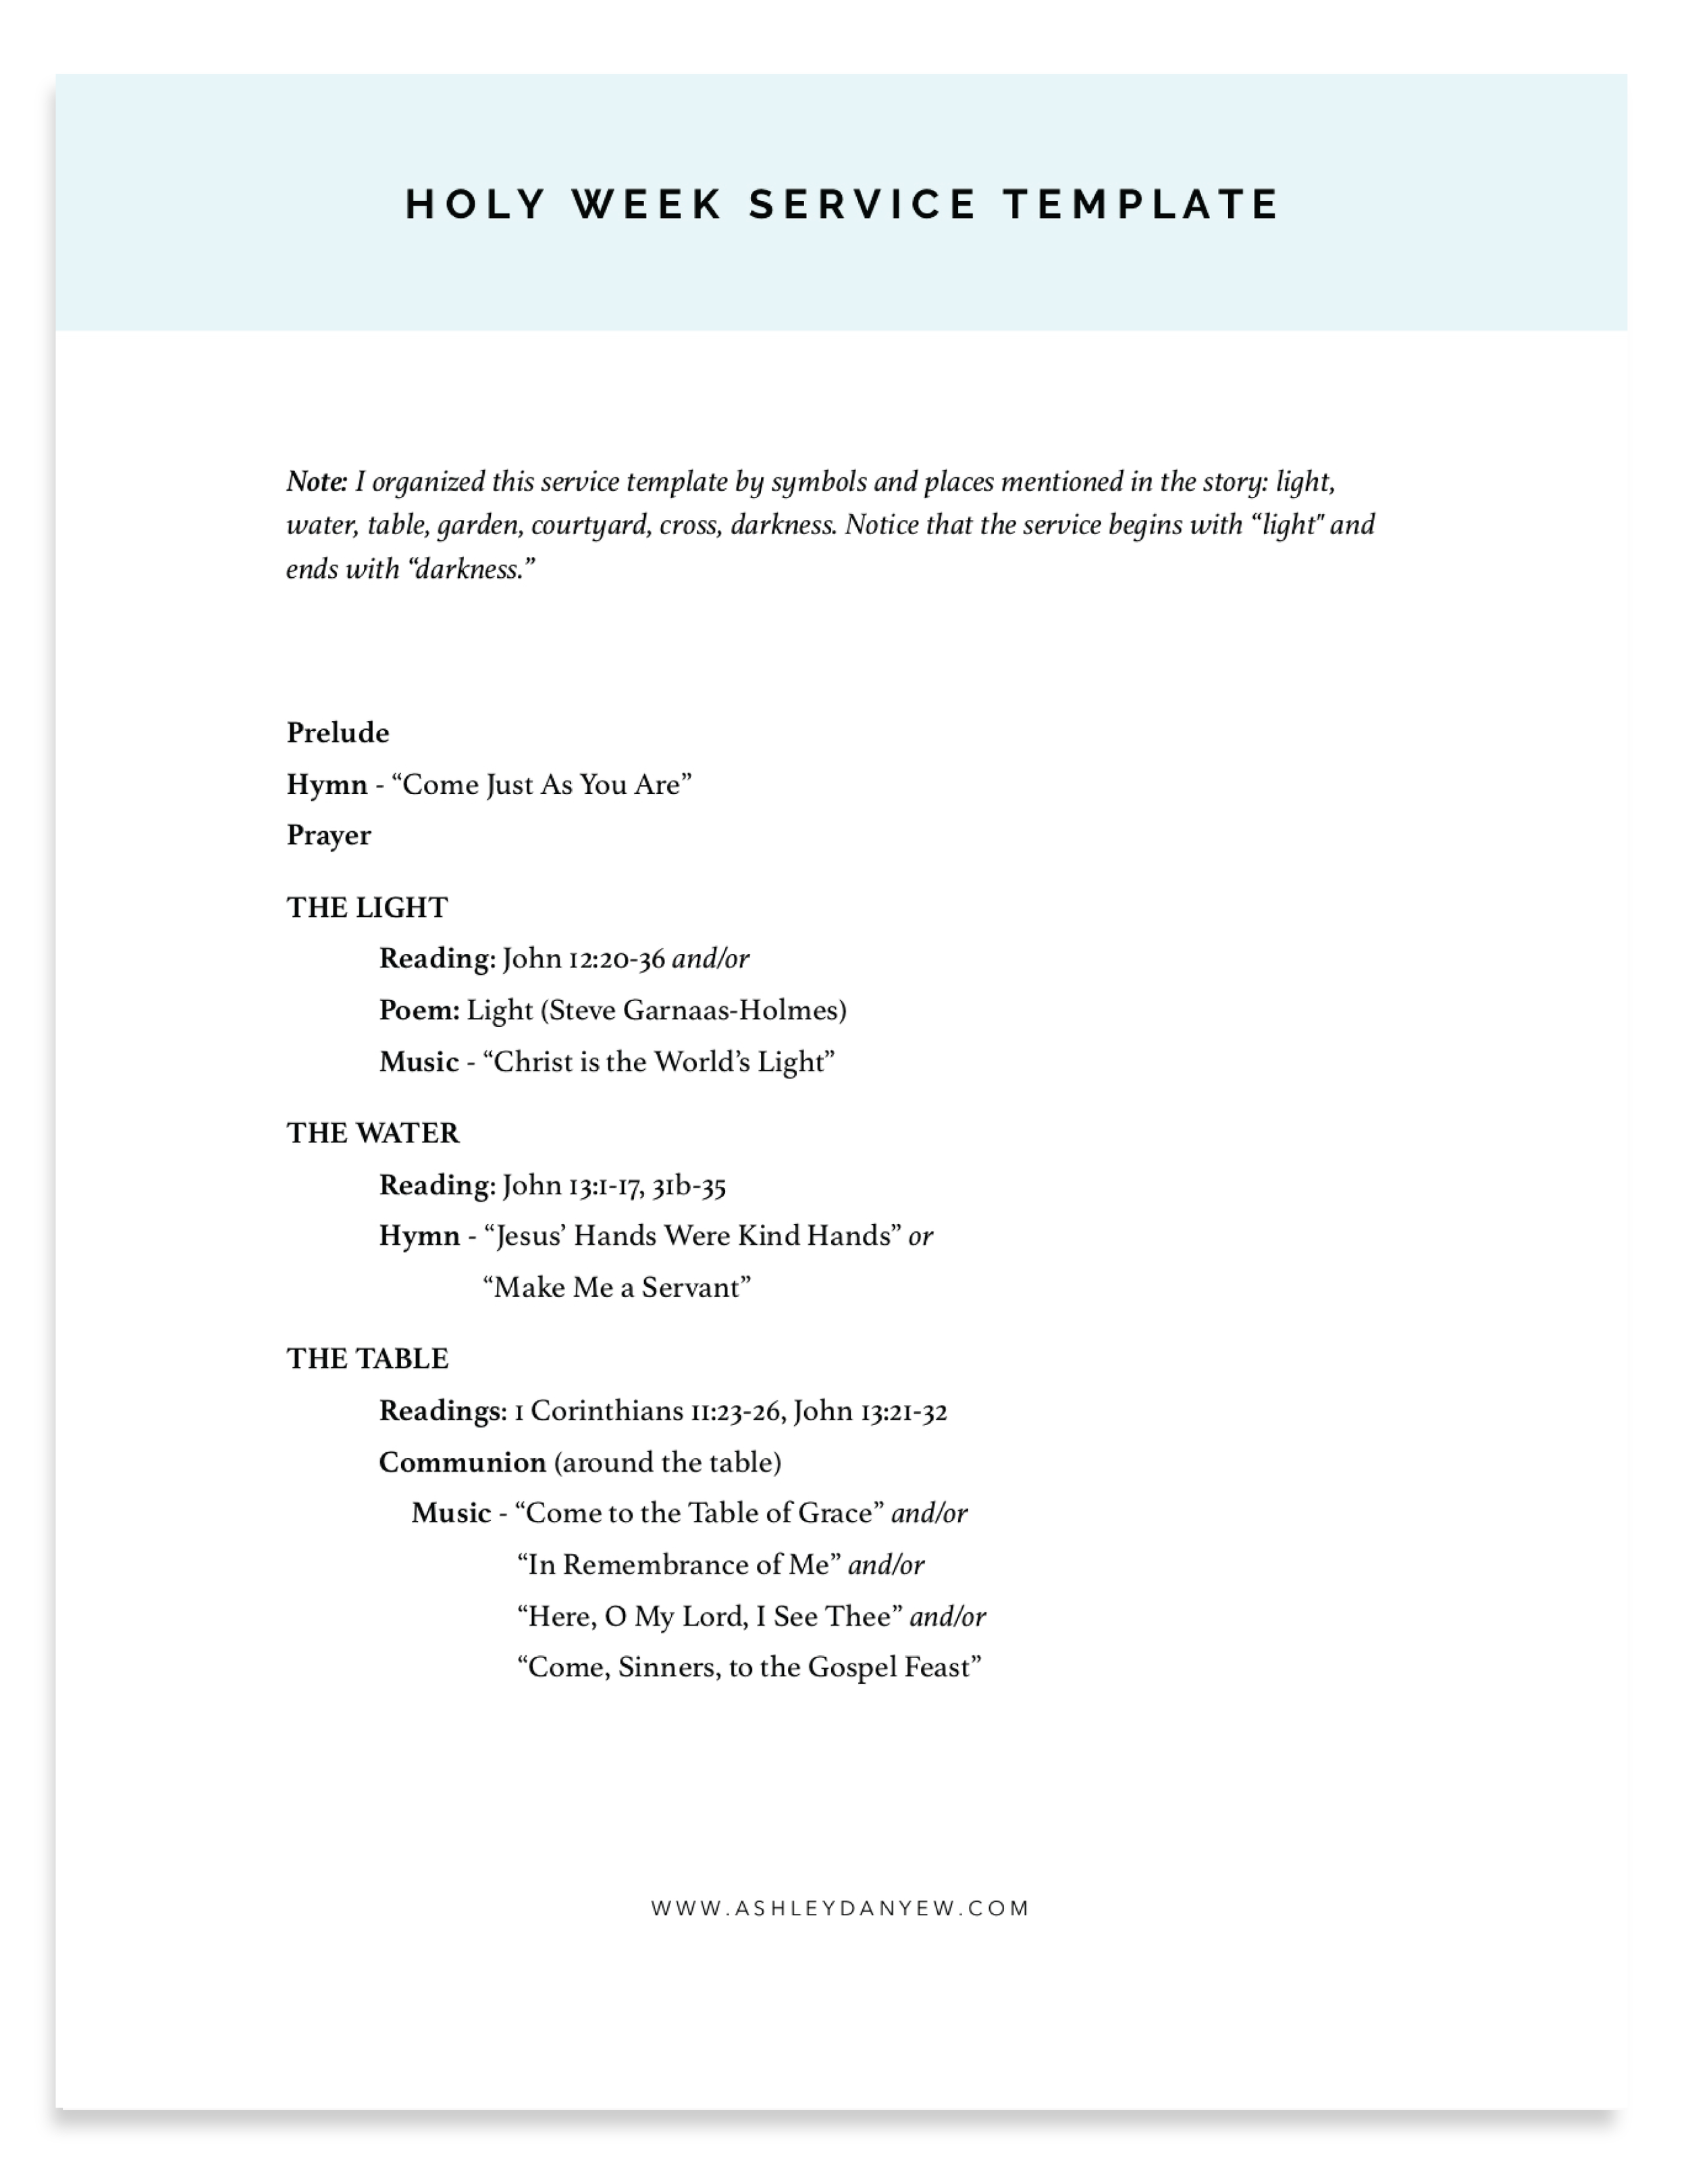 Free Holy Week Service Template and Lenten Resource Guide by Ashley Danyew.png